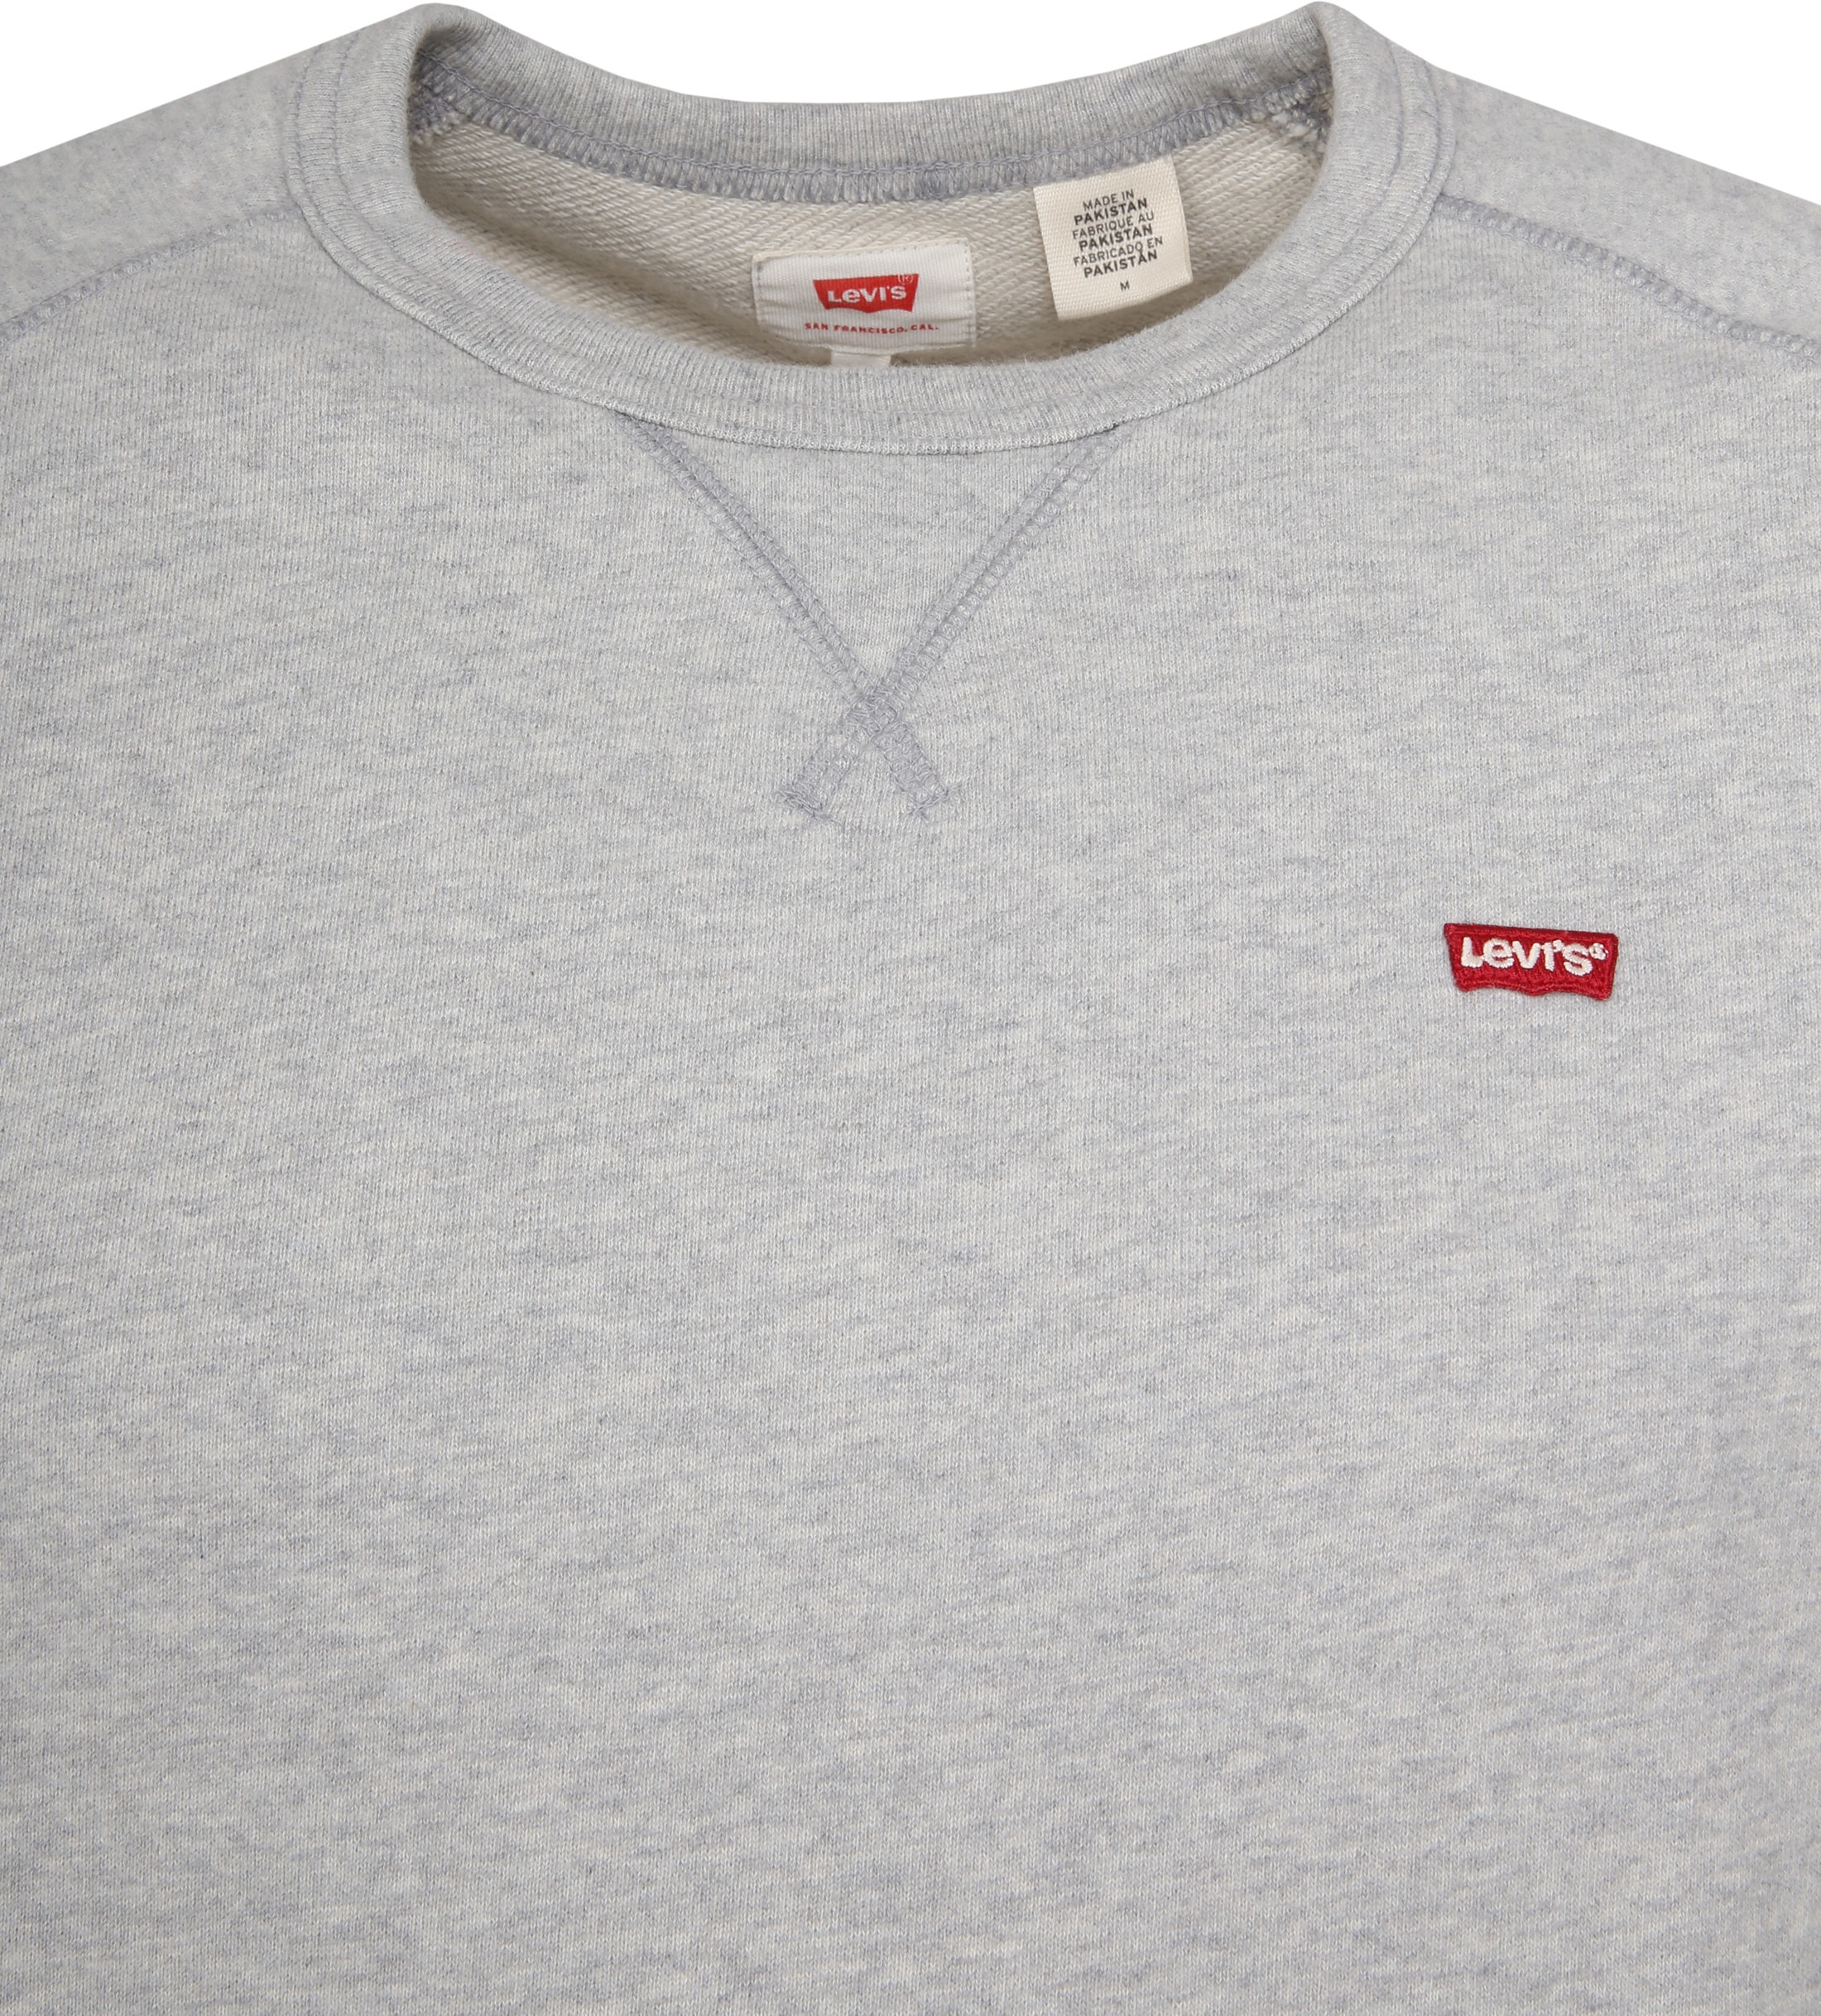 Levi's Original Sweater Grey photo 1